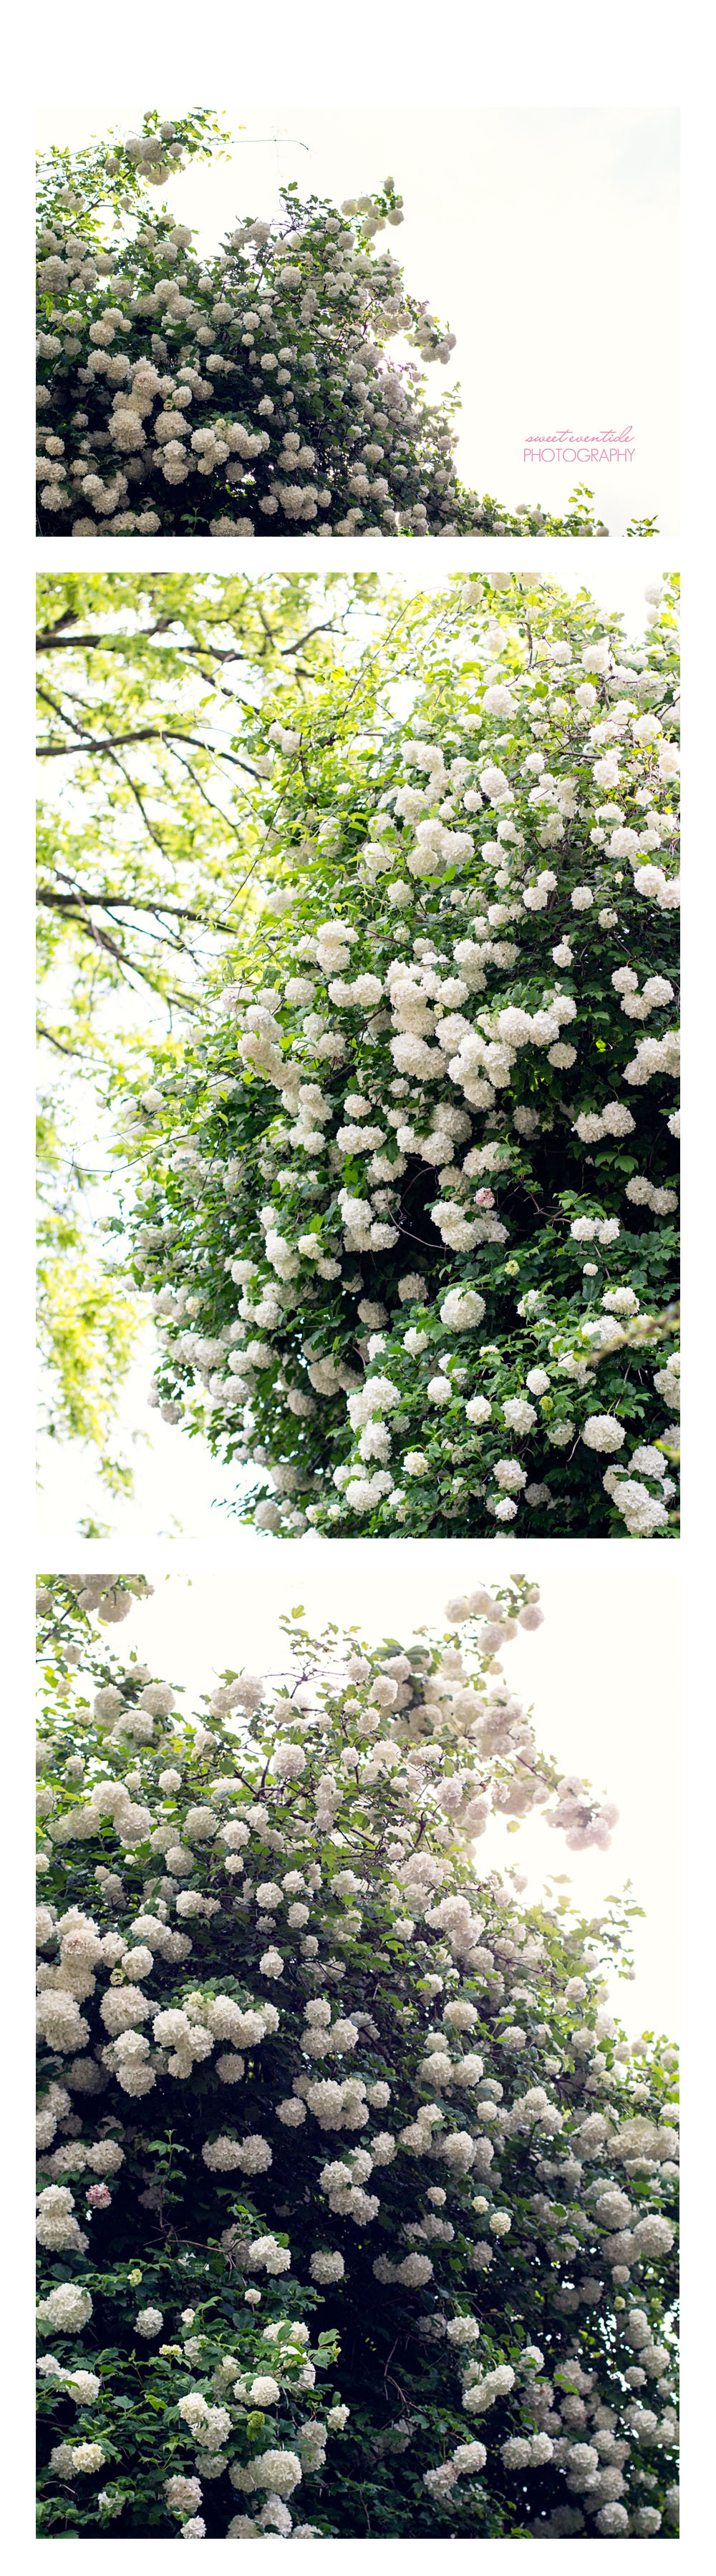 White Rhododendrons photo collage by Jessica Nichols, Sweet Eventide Photography